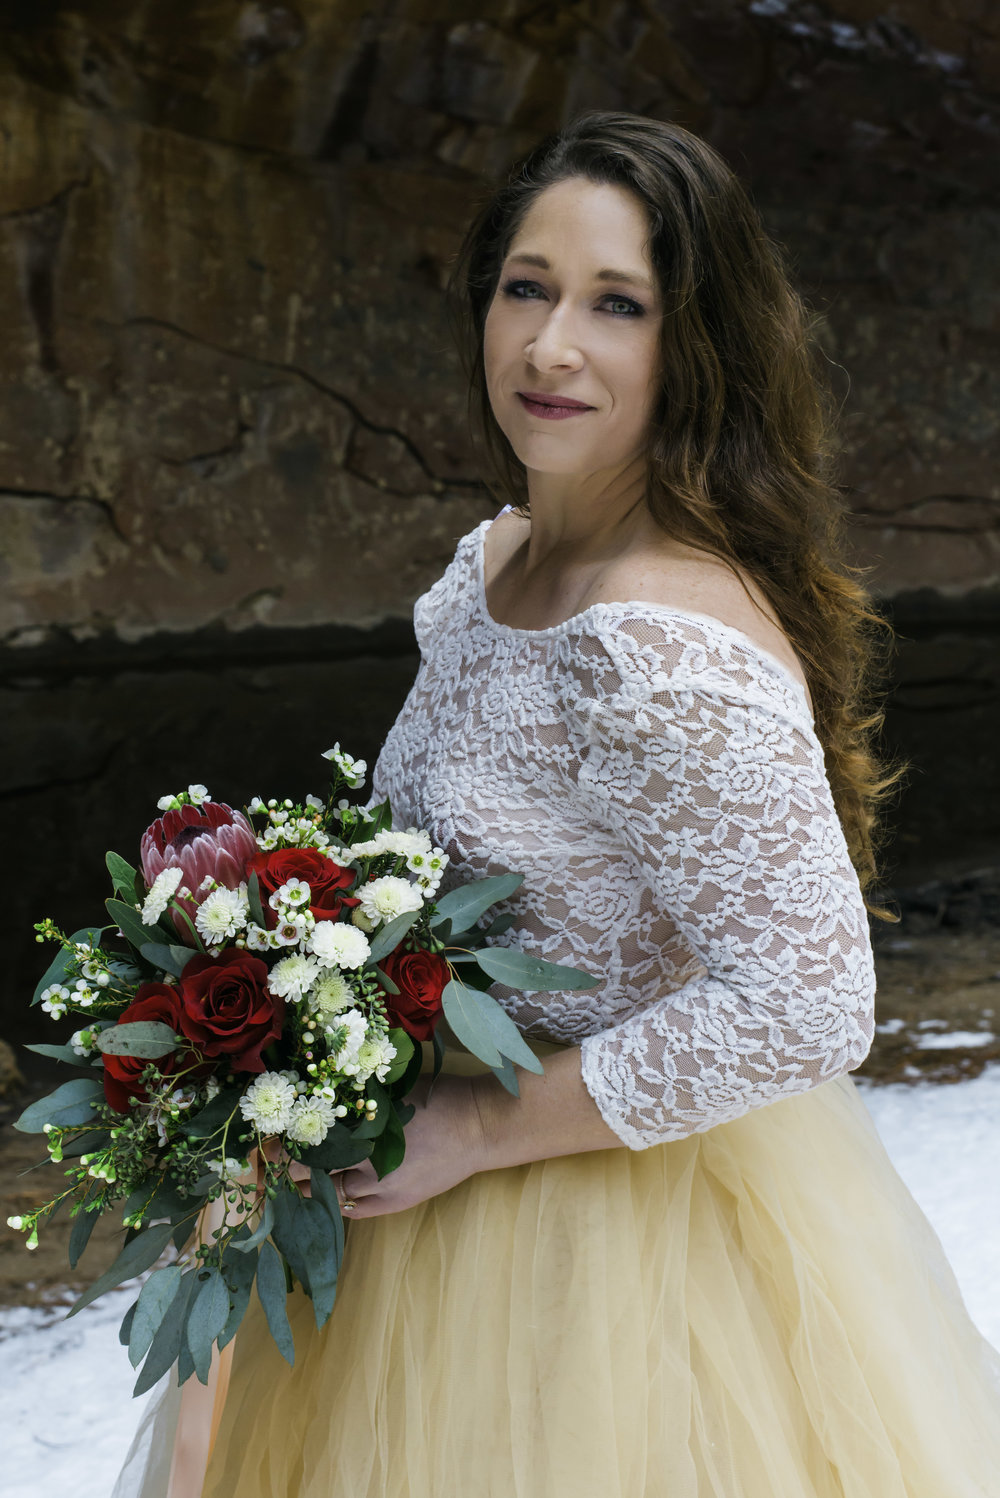 Bride in Tulle Dress with a Lace Top & Red Rose Bouquet